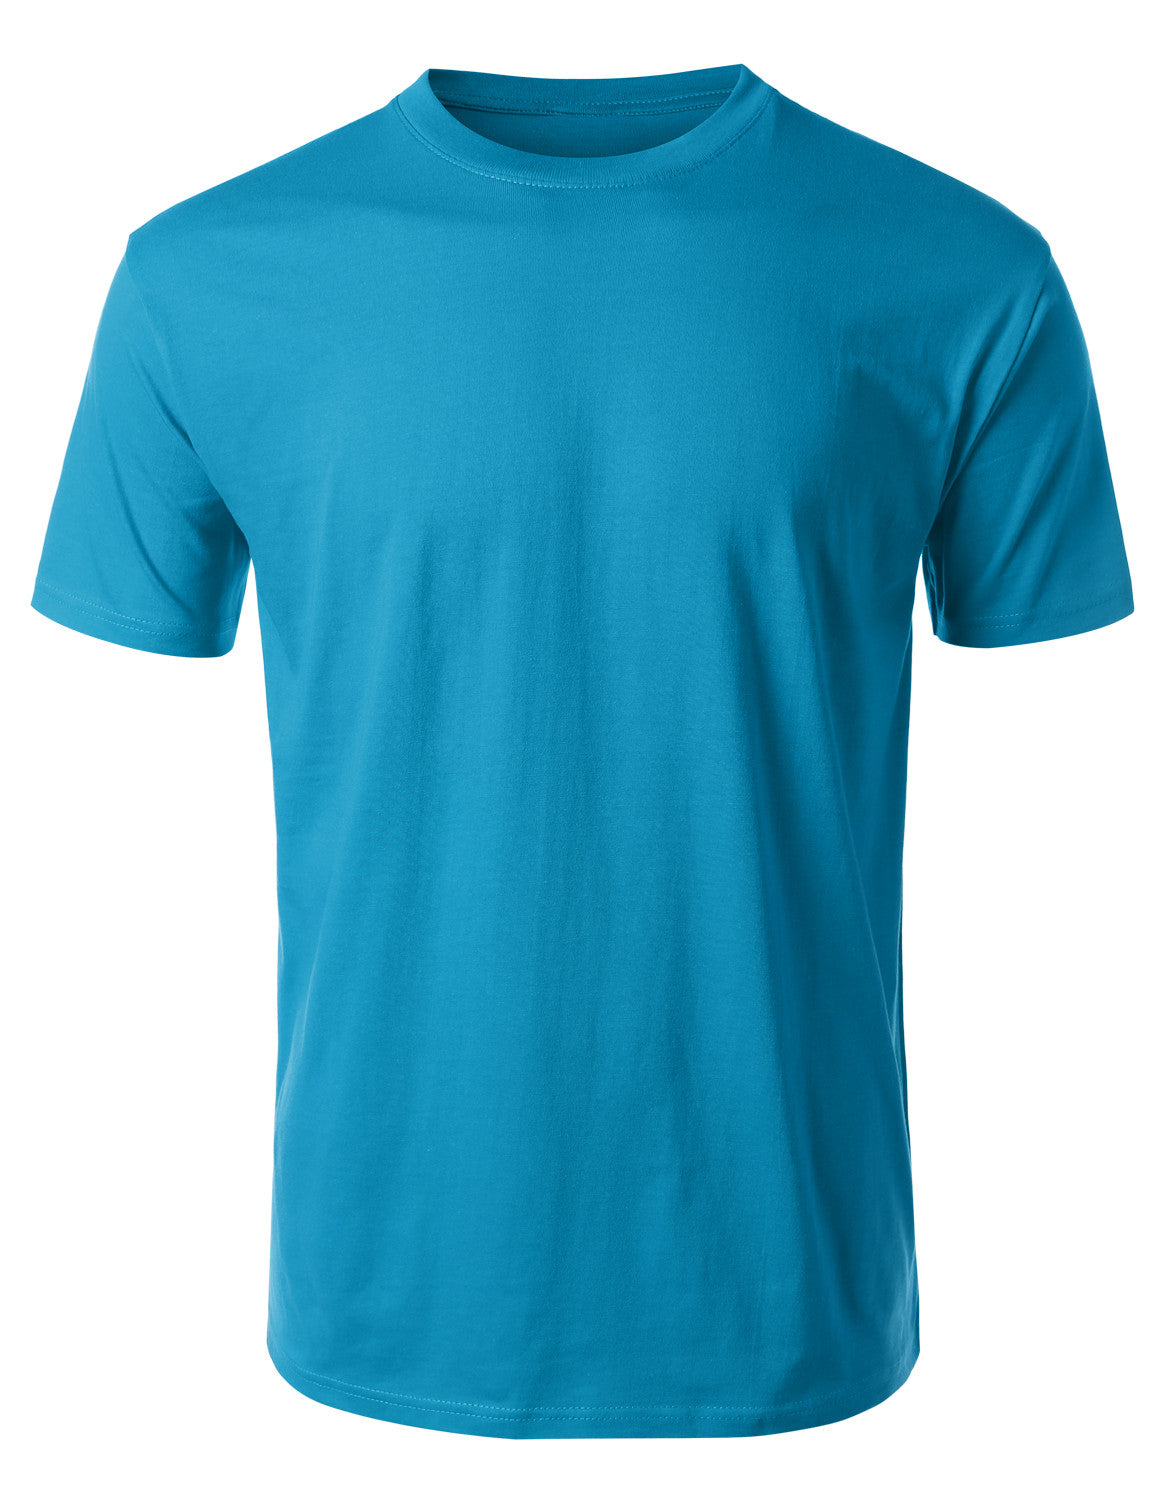 AQUA Basic Cotton Jersey Crewneck T-Shirt - URBANCREWS